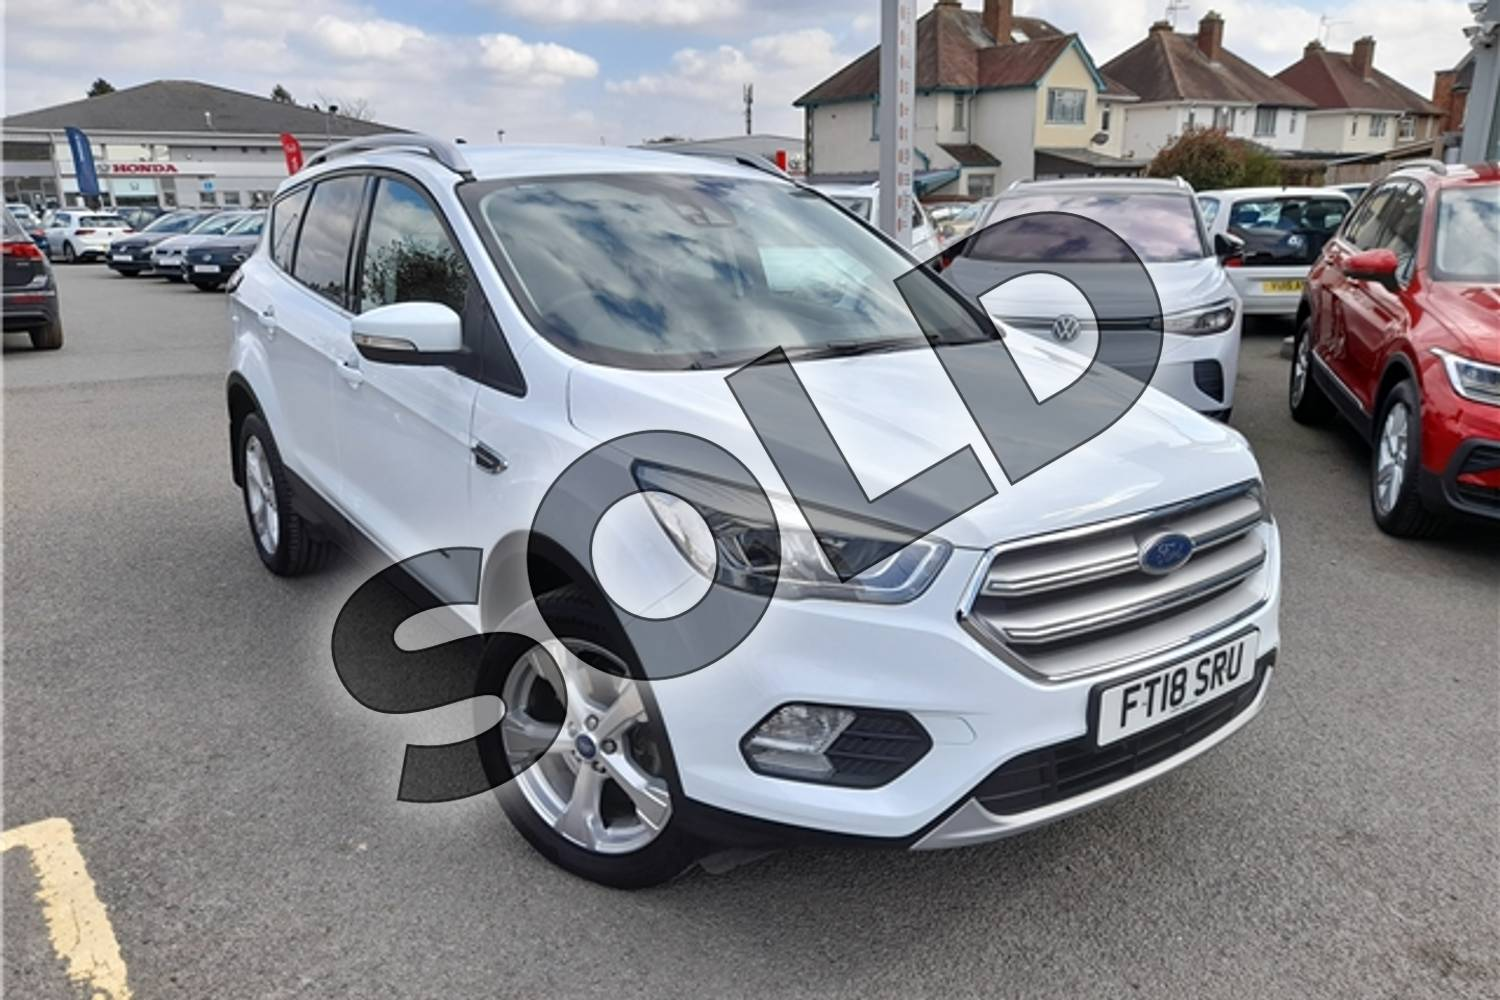 2017 Ford Kuga Diesel Estate 2.0 TDCi 180 Titanium 5dr Auto in Special solid - Frozen white at Listers Volkswagen Worcester